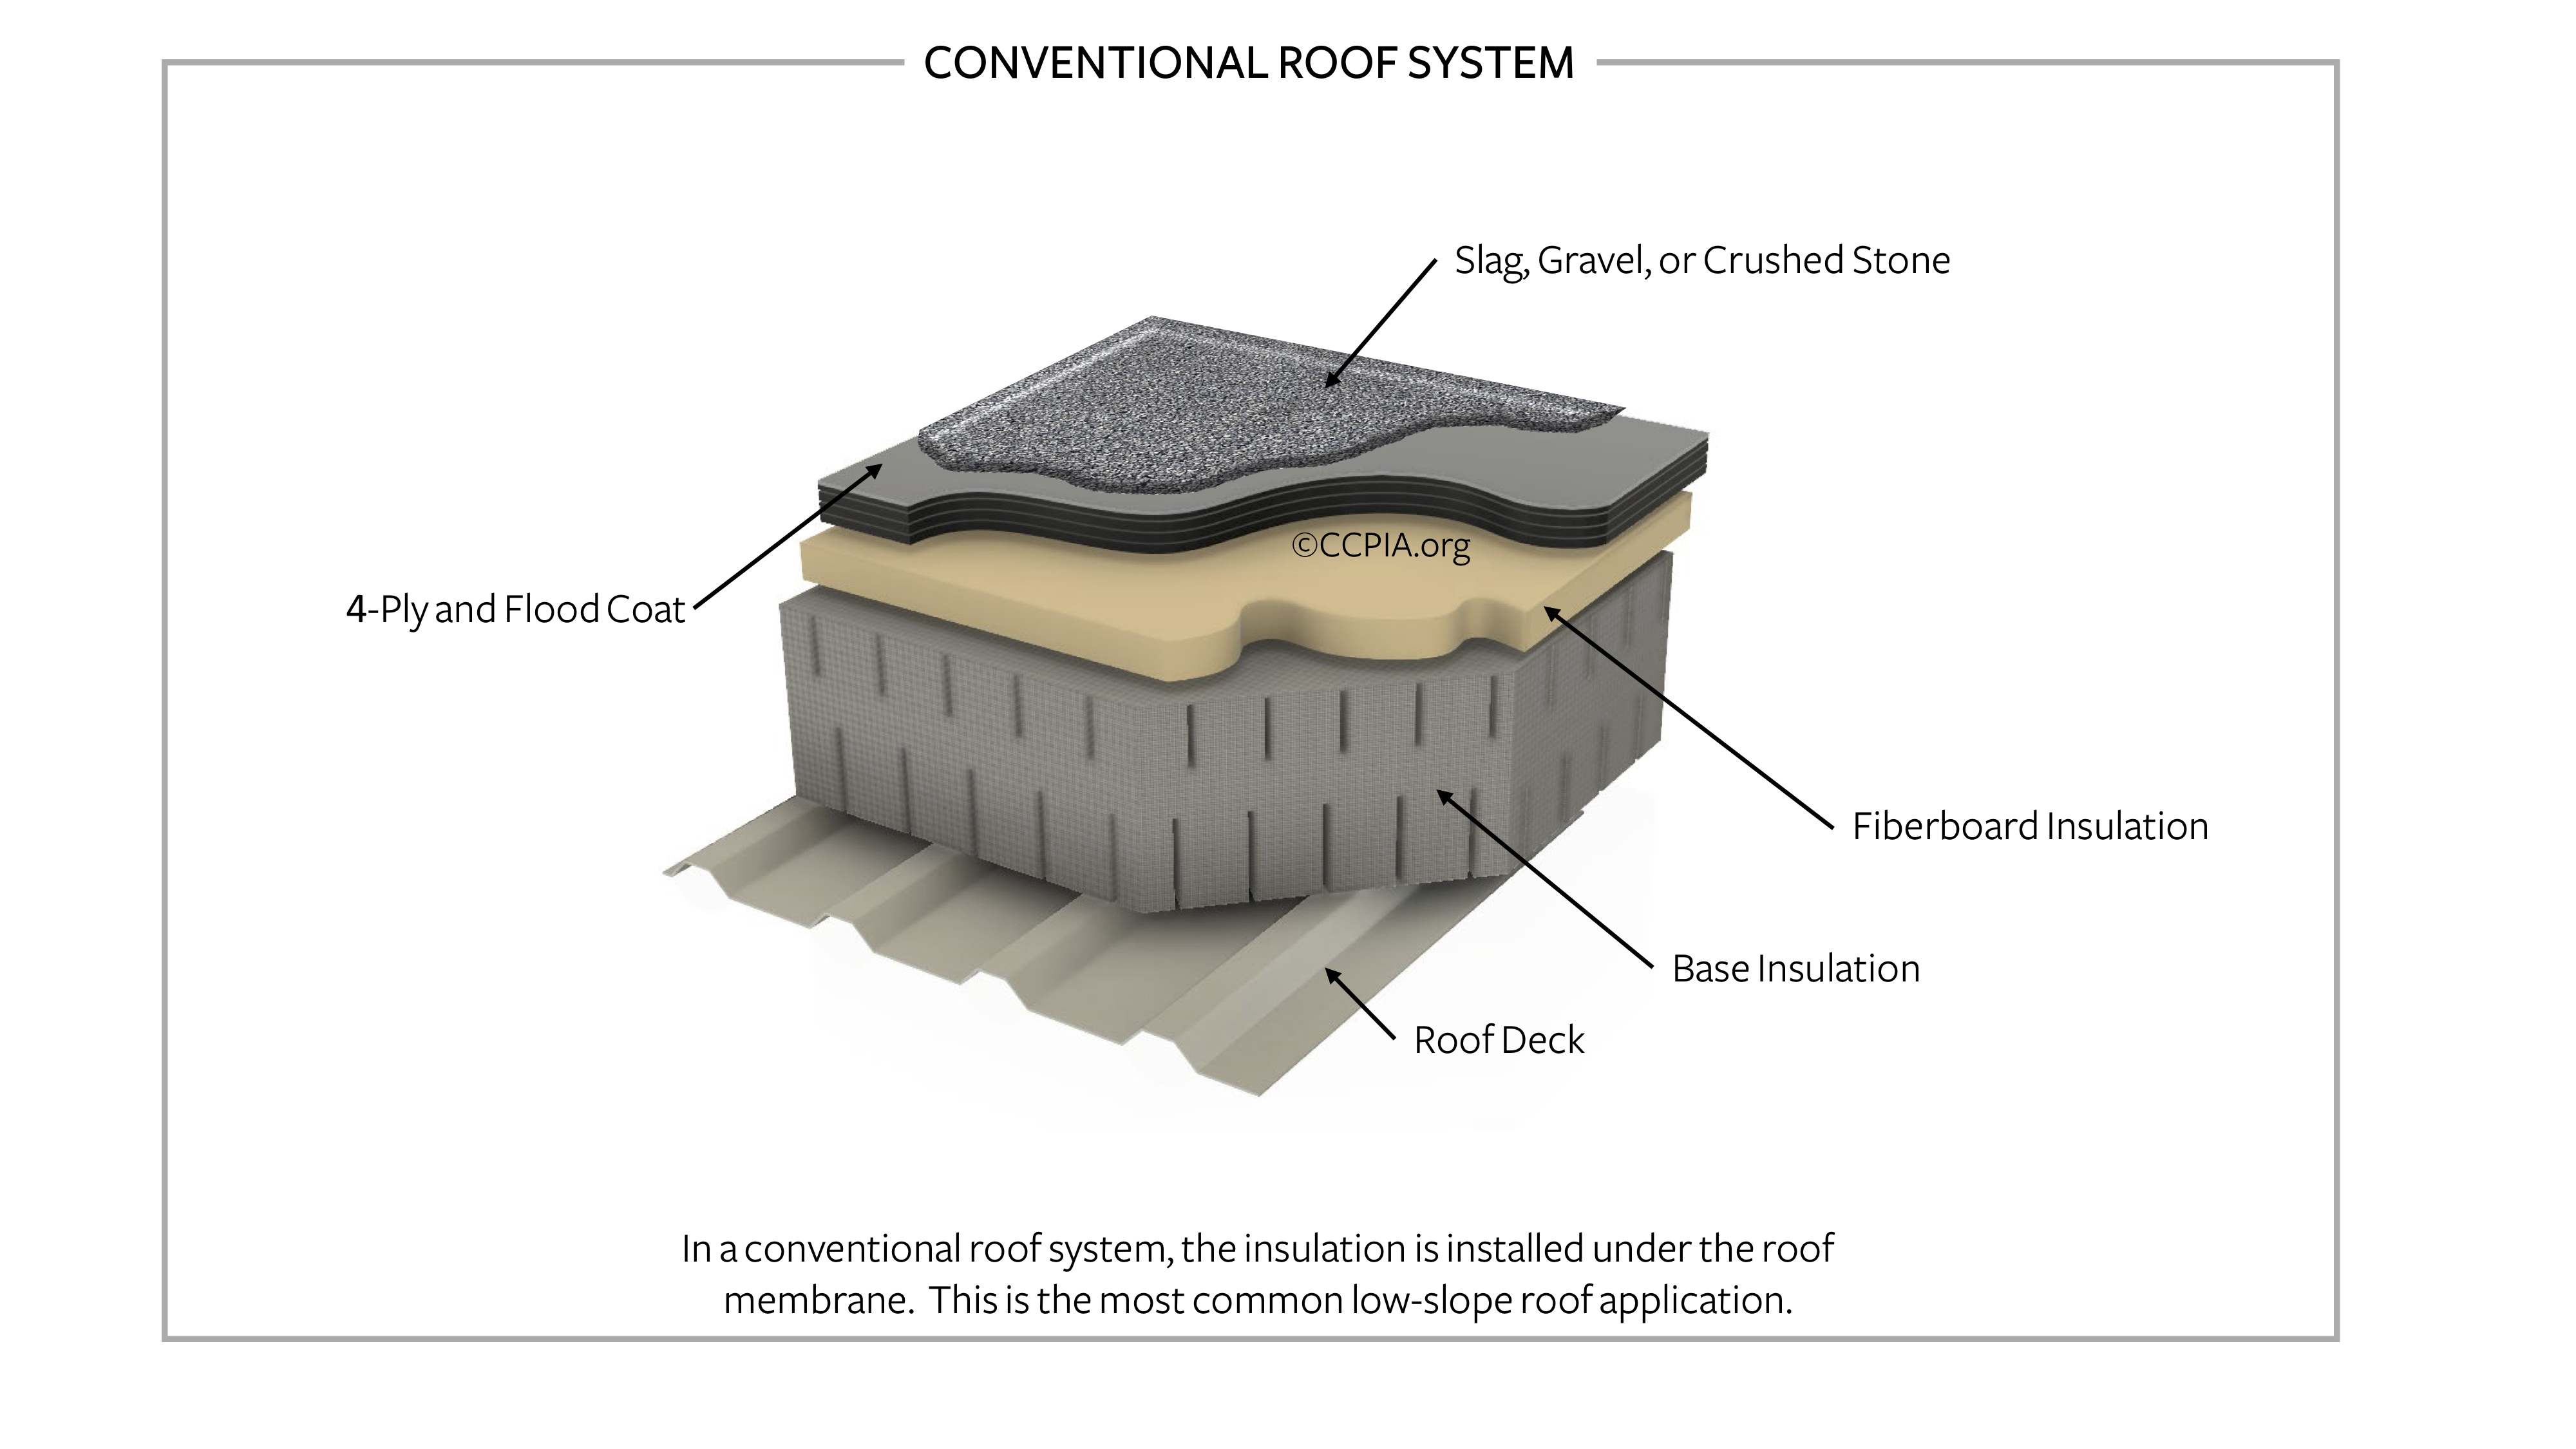 Low-slope conventional roof system.